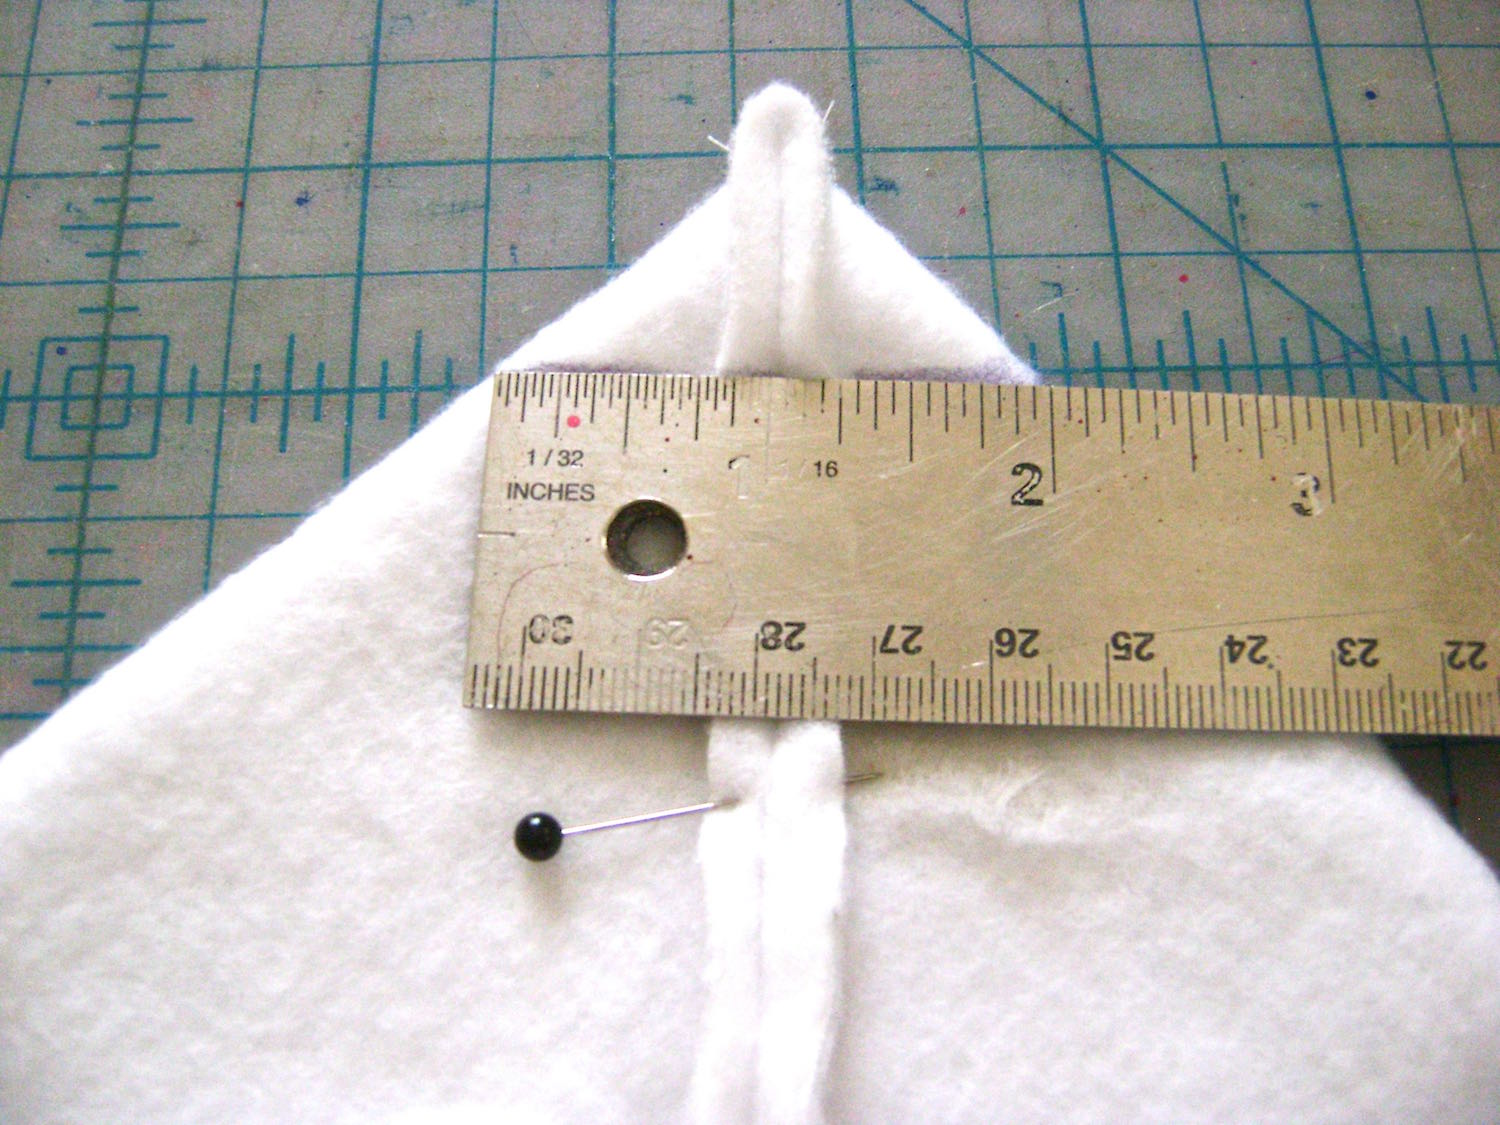 """step 16 - Sew the sides of the padding and lining. They are constructed in the same way. Sew the bottom seam leaving a 7"""" center opening in each. Lay the bottom seam against the side seam of the left and right bottom corners. Pin the seams together to create a triangle. Mark a line across the triangle to measure 2"""" across. There should be one inch to the left and right of the seam. Sew on the line to create the squared bottom corners of the bag."""